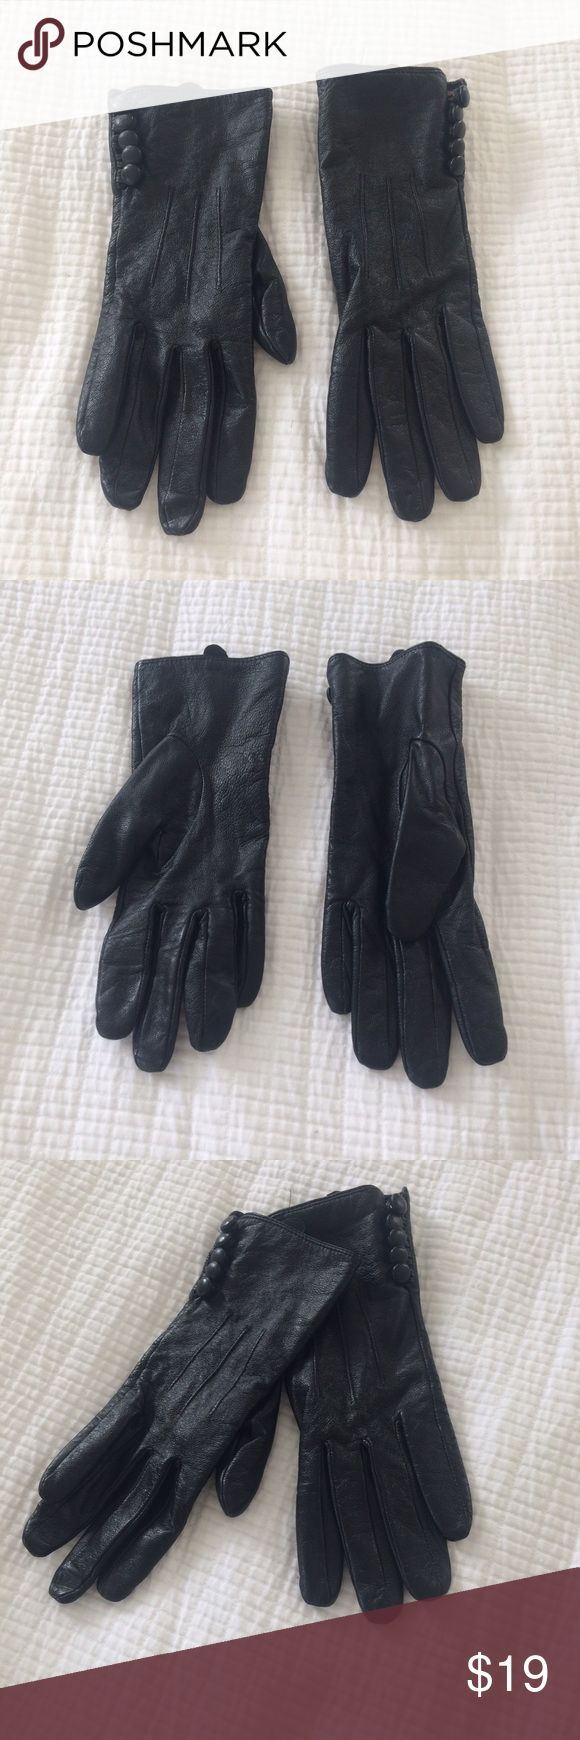 Black leather gloves buttons - Black Leather Gloves